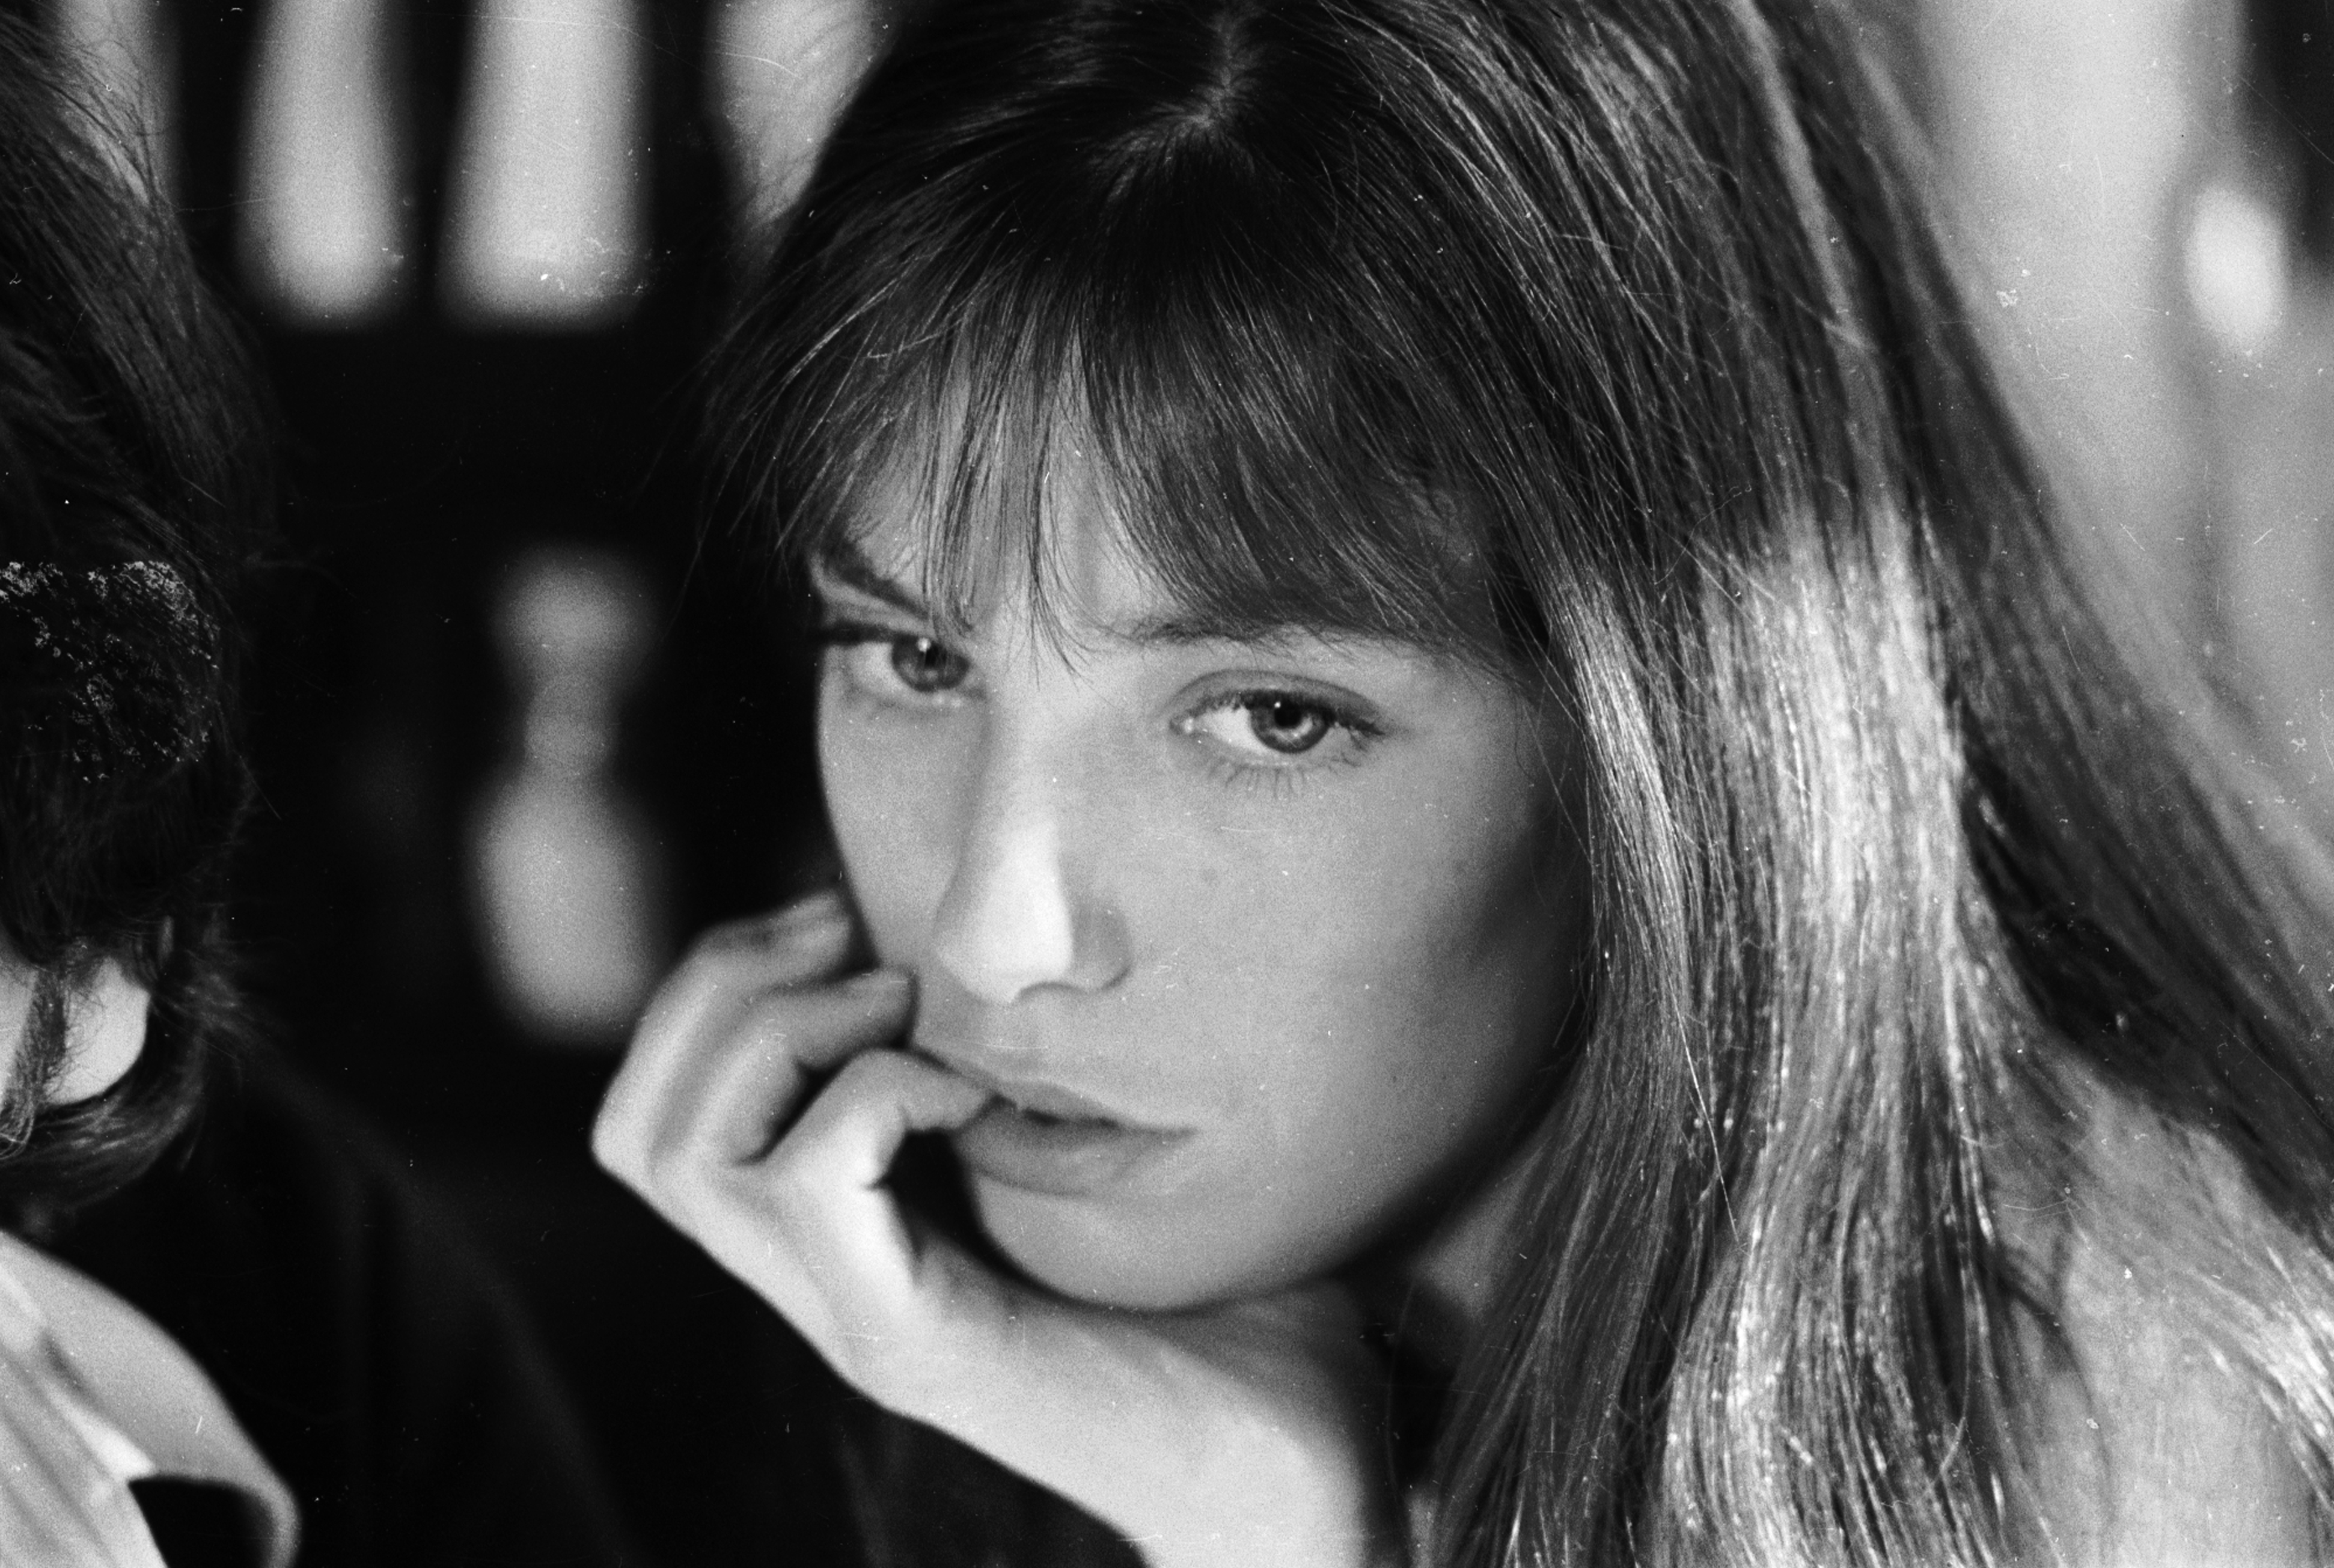 ragazza inresistibile - 1975:  British singer, actress and model Jane Birkin who plays the title role in the comedy 'Catherine et Cie', aka Catherine & Co., directed by Michel Boisrond.  (Photo by Keystone/Getty Images)